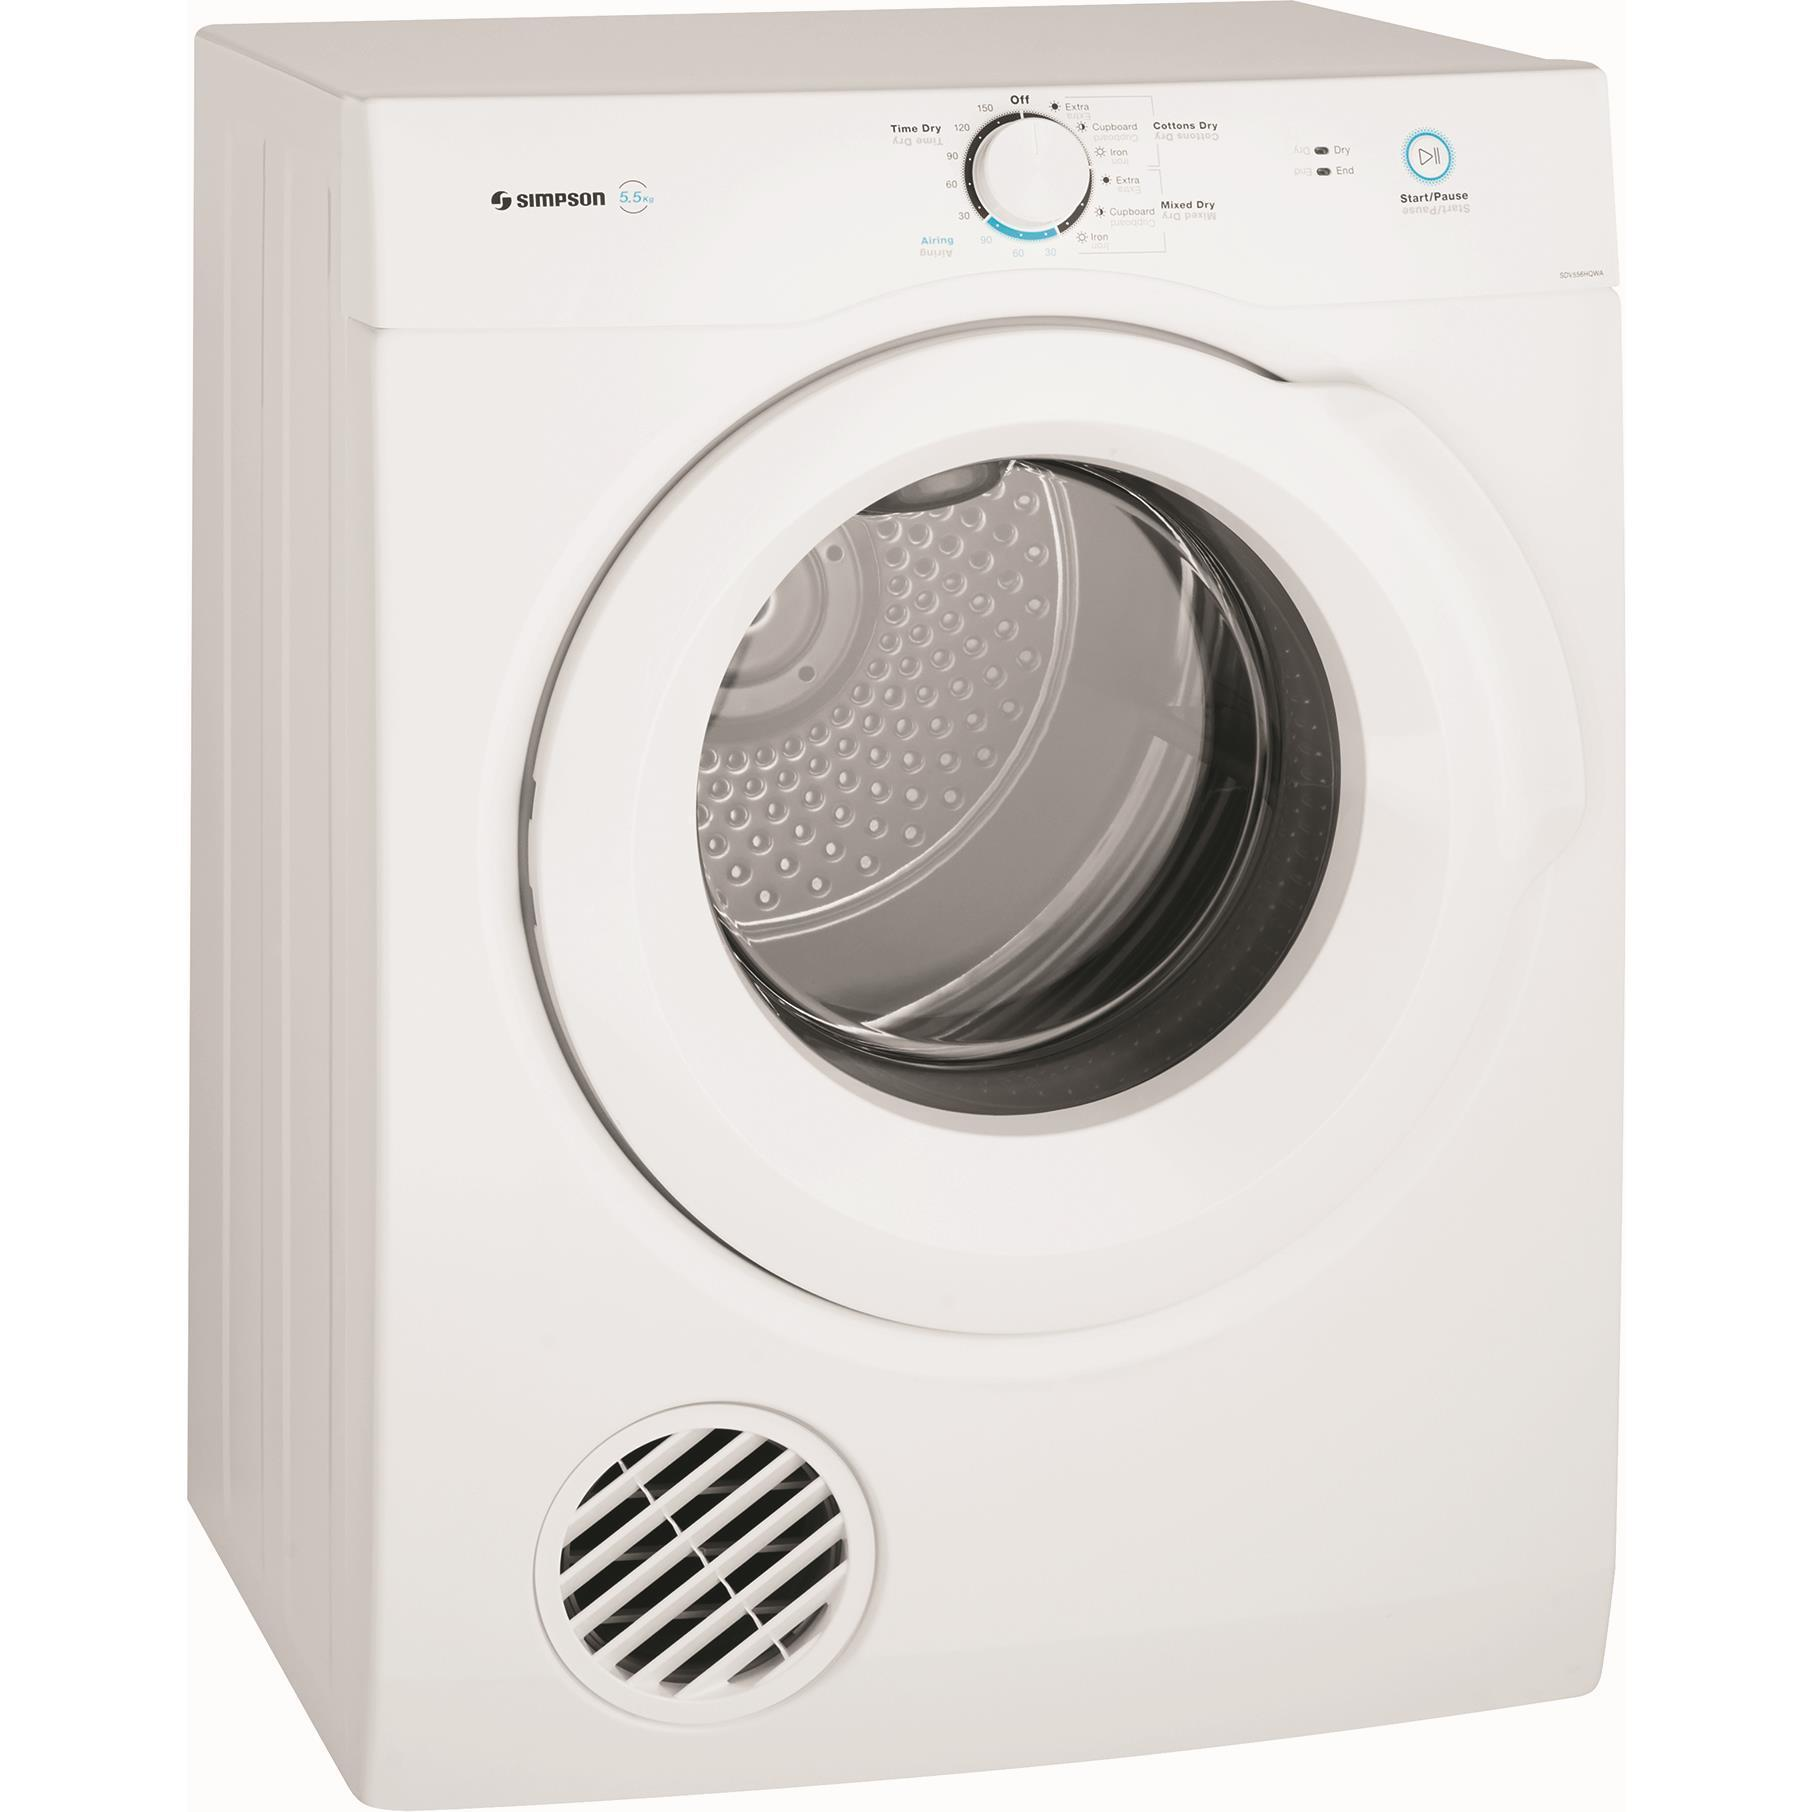 Simpson SDV556HQWA 5.5kg Auto Vented Dryer